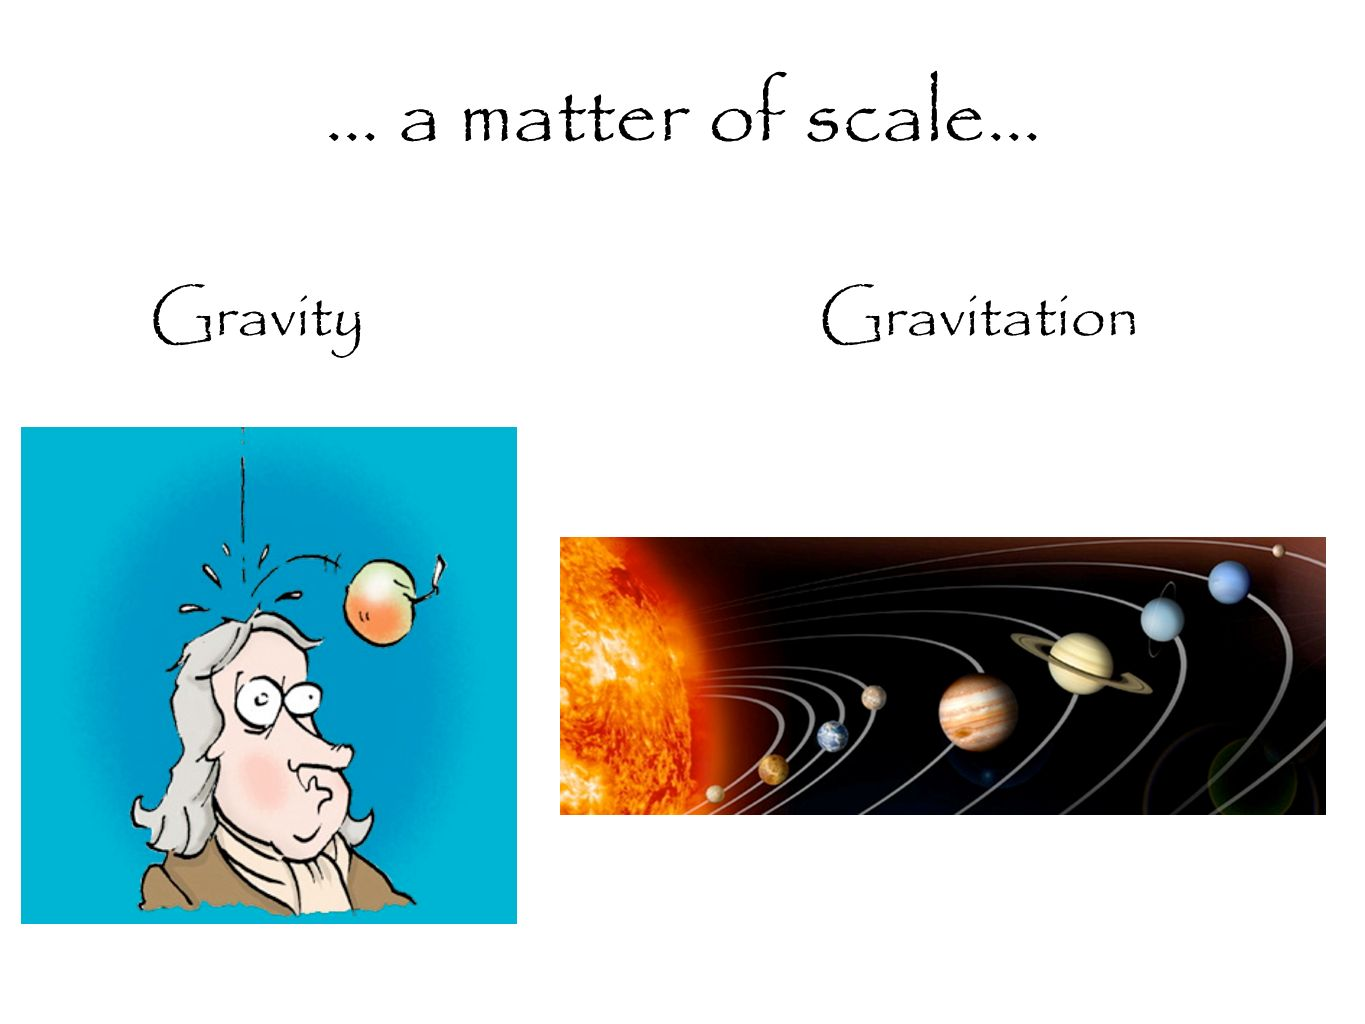 GravityGravitation... a matter of scale...